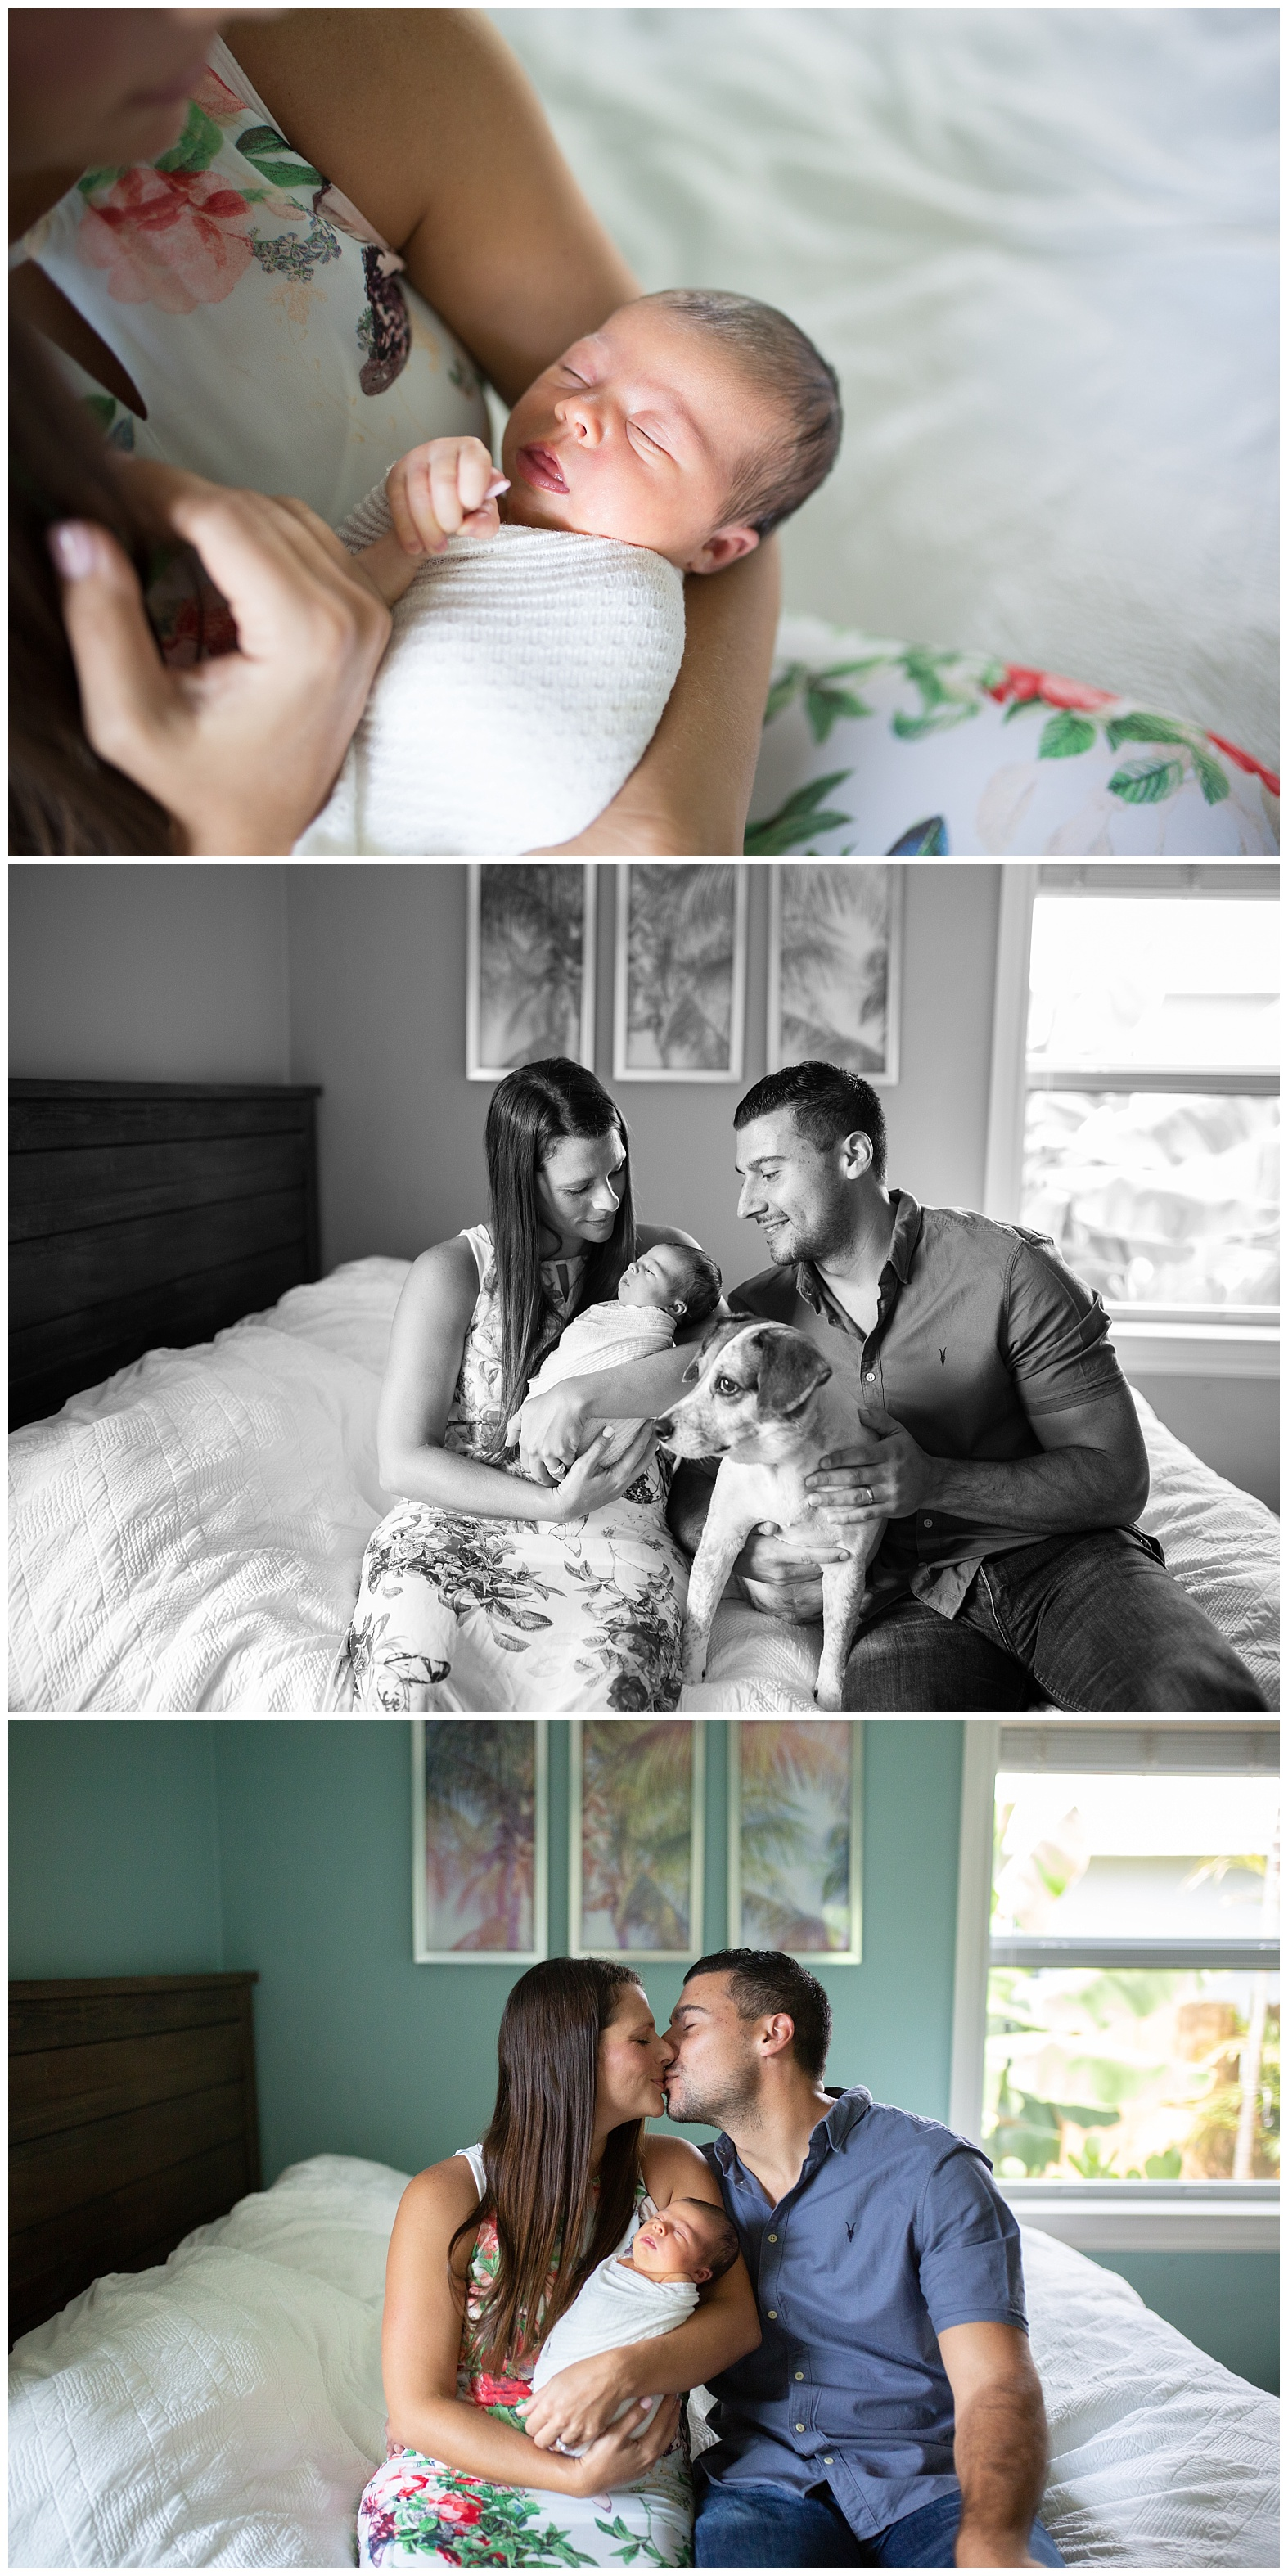 At home newborn Photography session Miami Broward newborn photographer